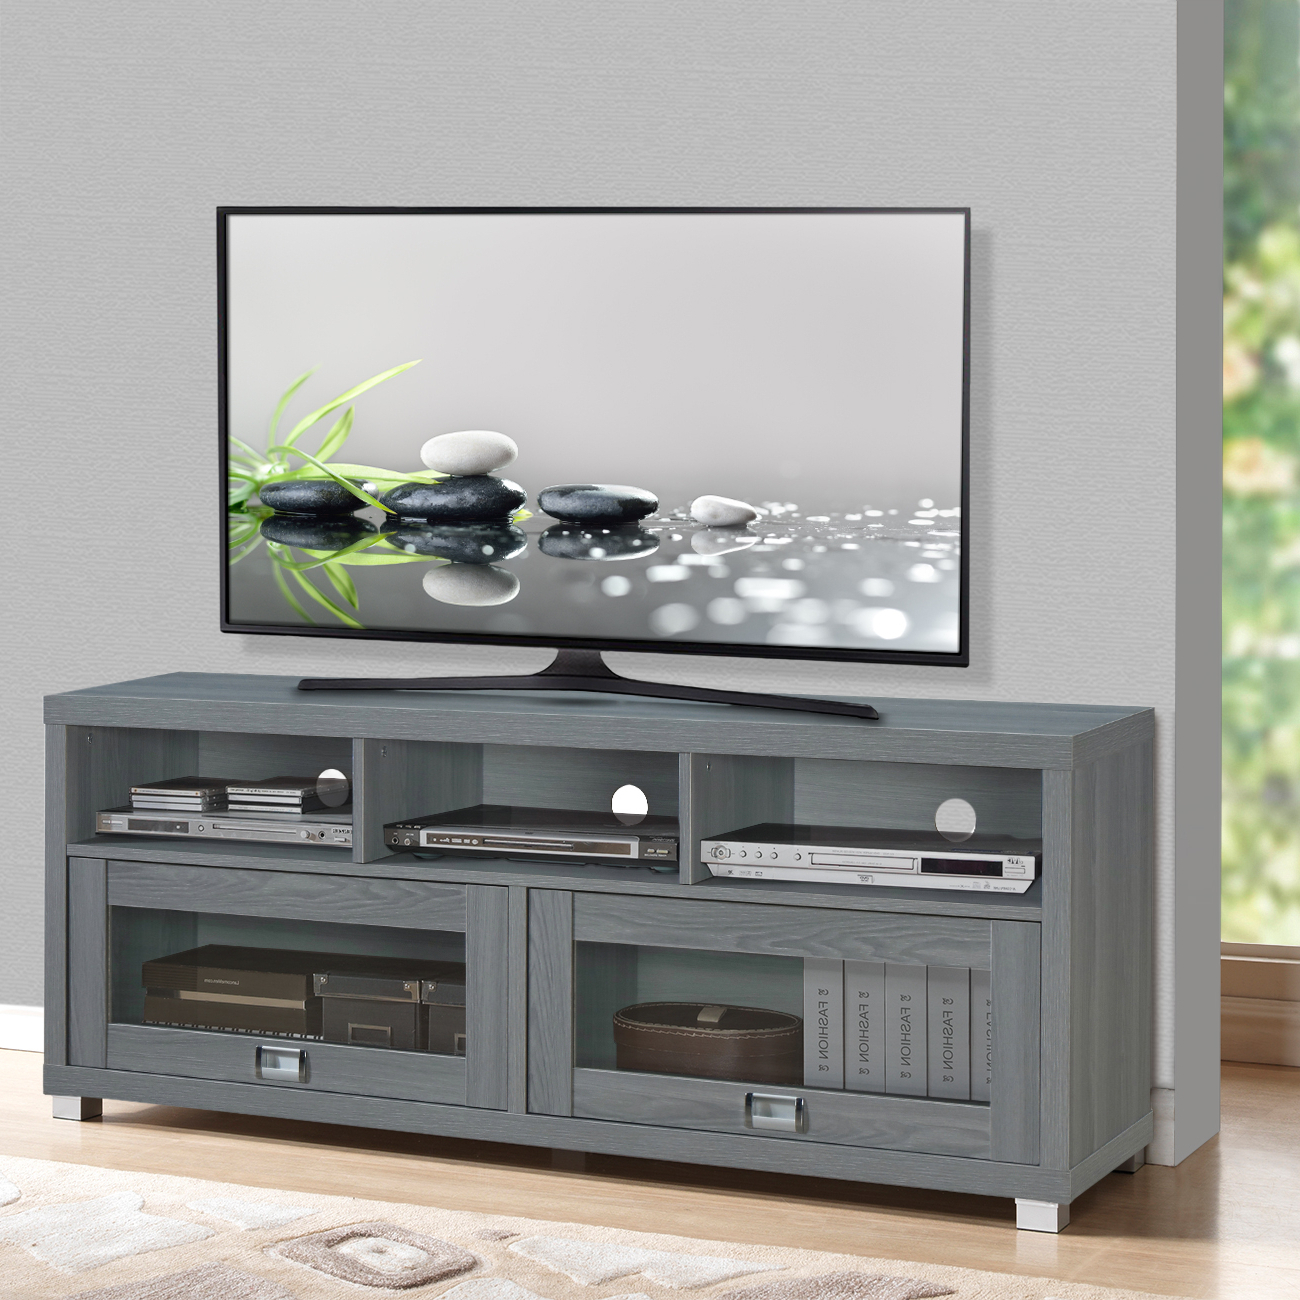 """Flat Screen Tv Stand Up To 75 Inch 50 55 60 65 70 55in For Popular Virginia Tv Stands For Tvs Up To 50"""" (View 17 of 25)"""